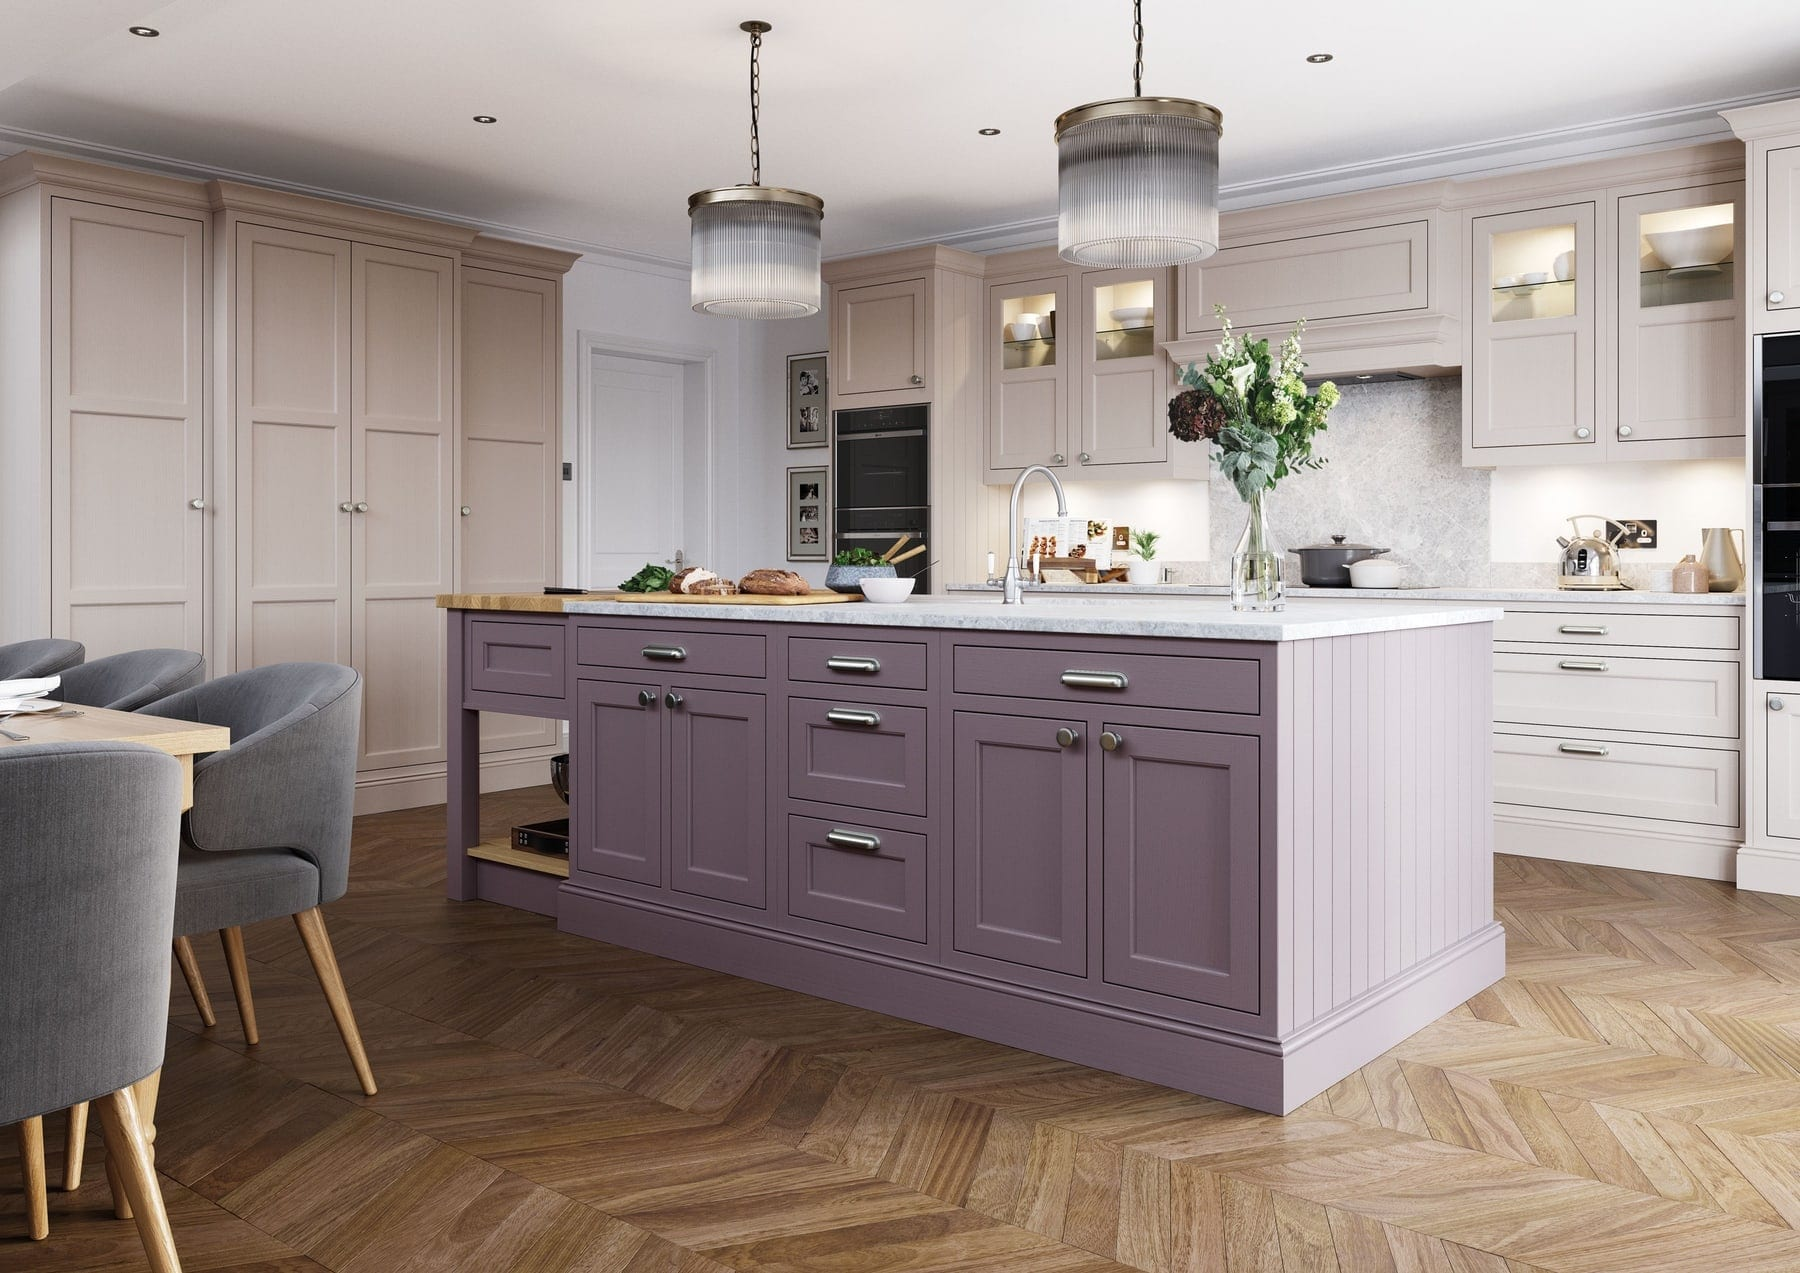 Belgravia Lavender Gray And Cashmere In Frame Shaker Kitchen With Island | Colour House Interiors, Caterham